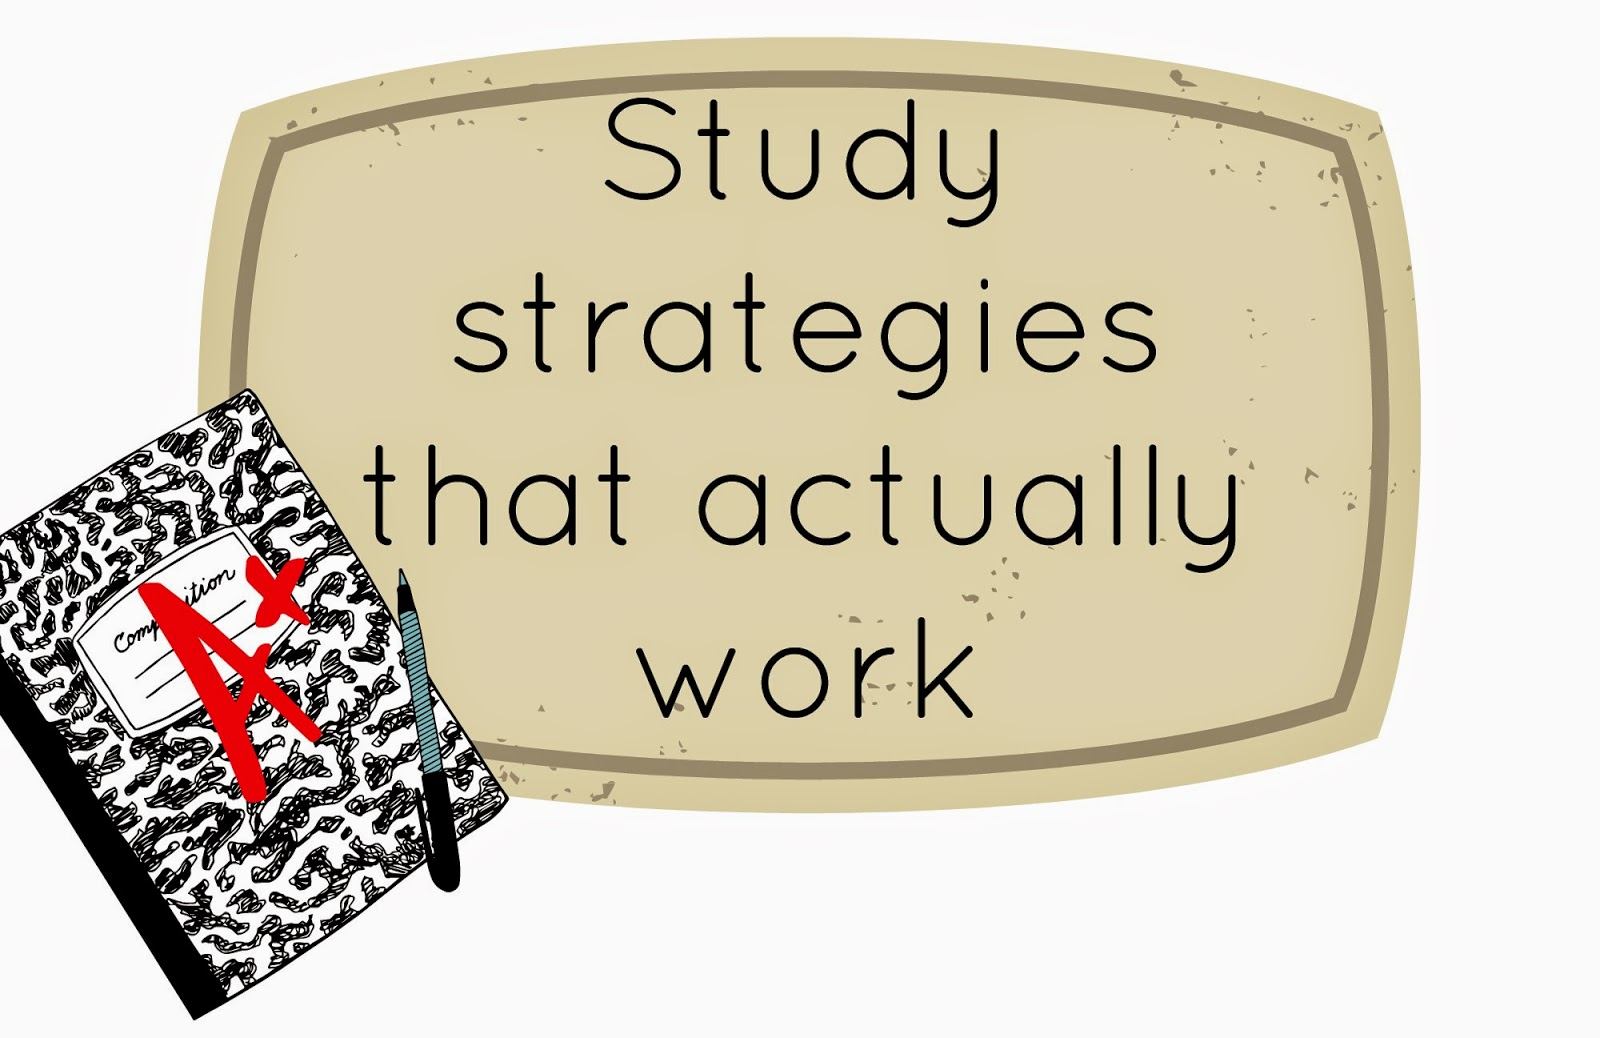 http://chalkituptobetterluck.blogspot.com/2015/03/study-strategies-that-actually-work.html